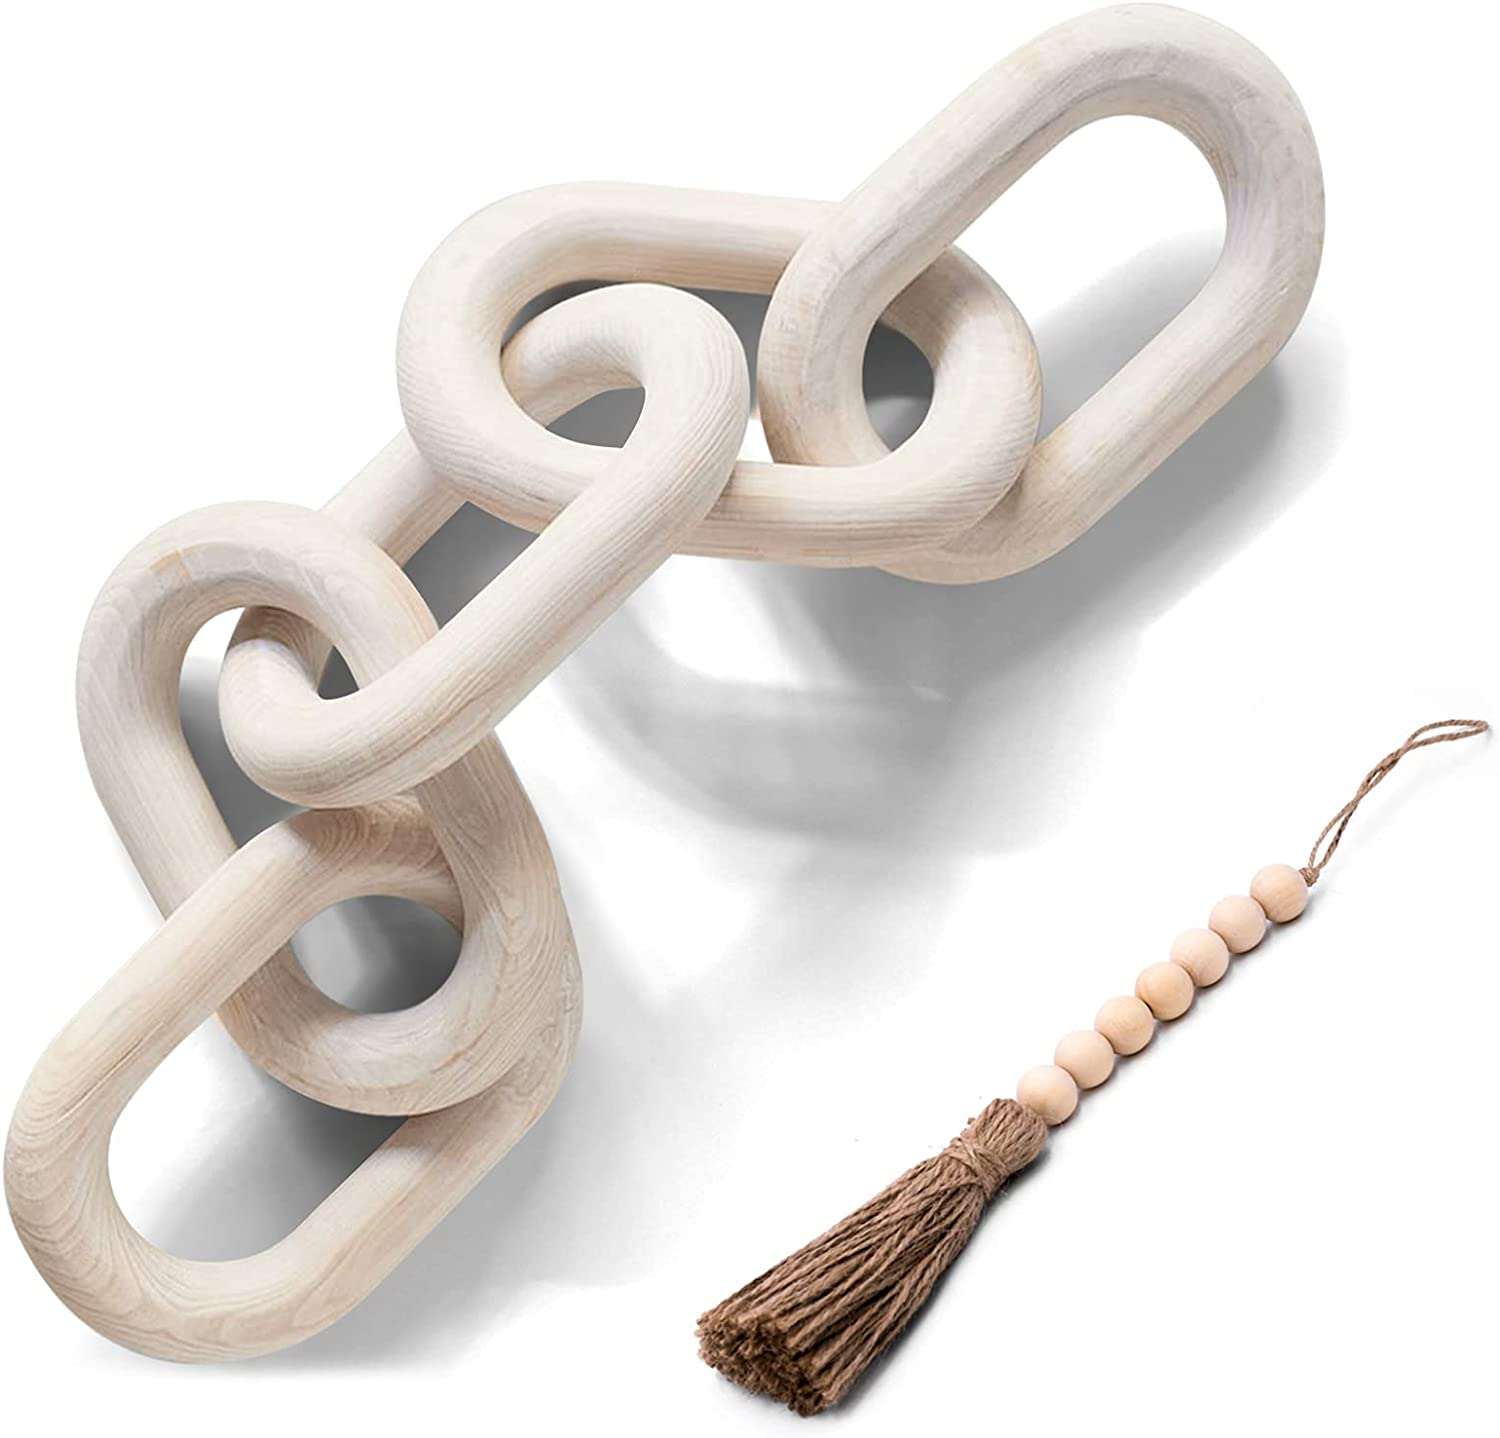 Wood Chain Link Decor Hand Carved Wooden 5-Link Chain Decor for Home Coffee Table Farmhouse Bookshelf Tray Bowl Rustic Country White Washed Decorative Statue Large Pale Modern Pine Wood 22in SierTing